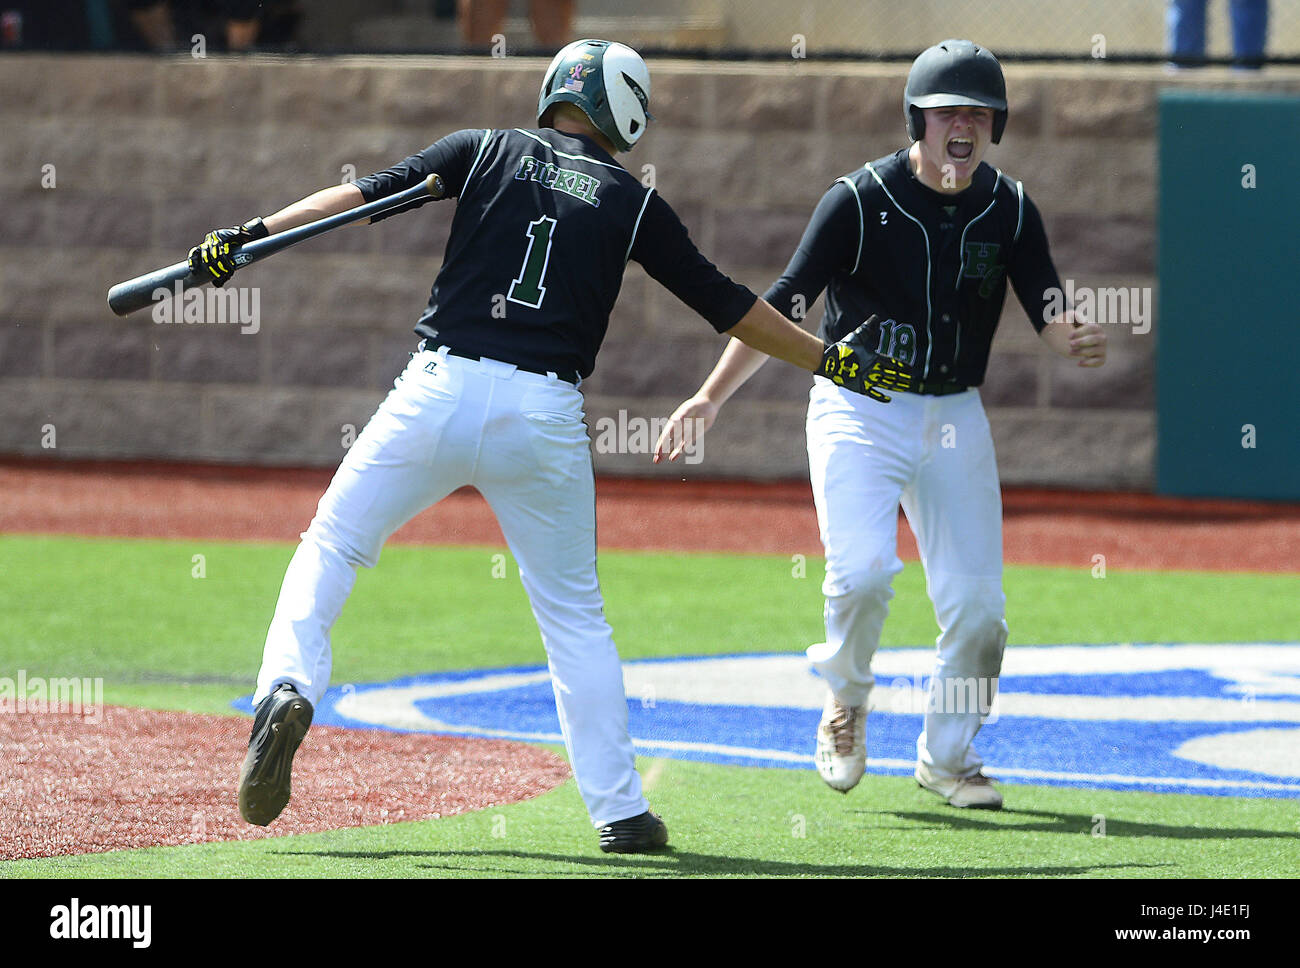 Albuquerque, NEW MEXICO, USA. 11th May, 2017. JOURNAL 051117.Hope Christian Huskies Tyler Fickel, left and teammate Stock Photo